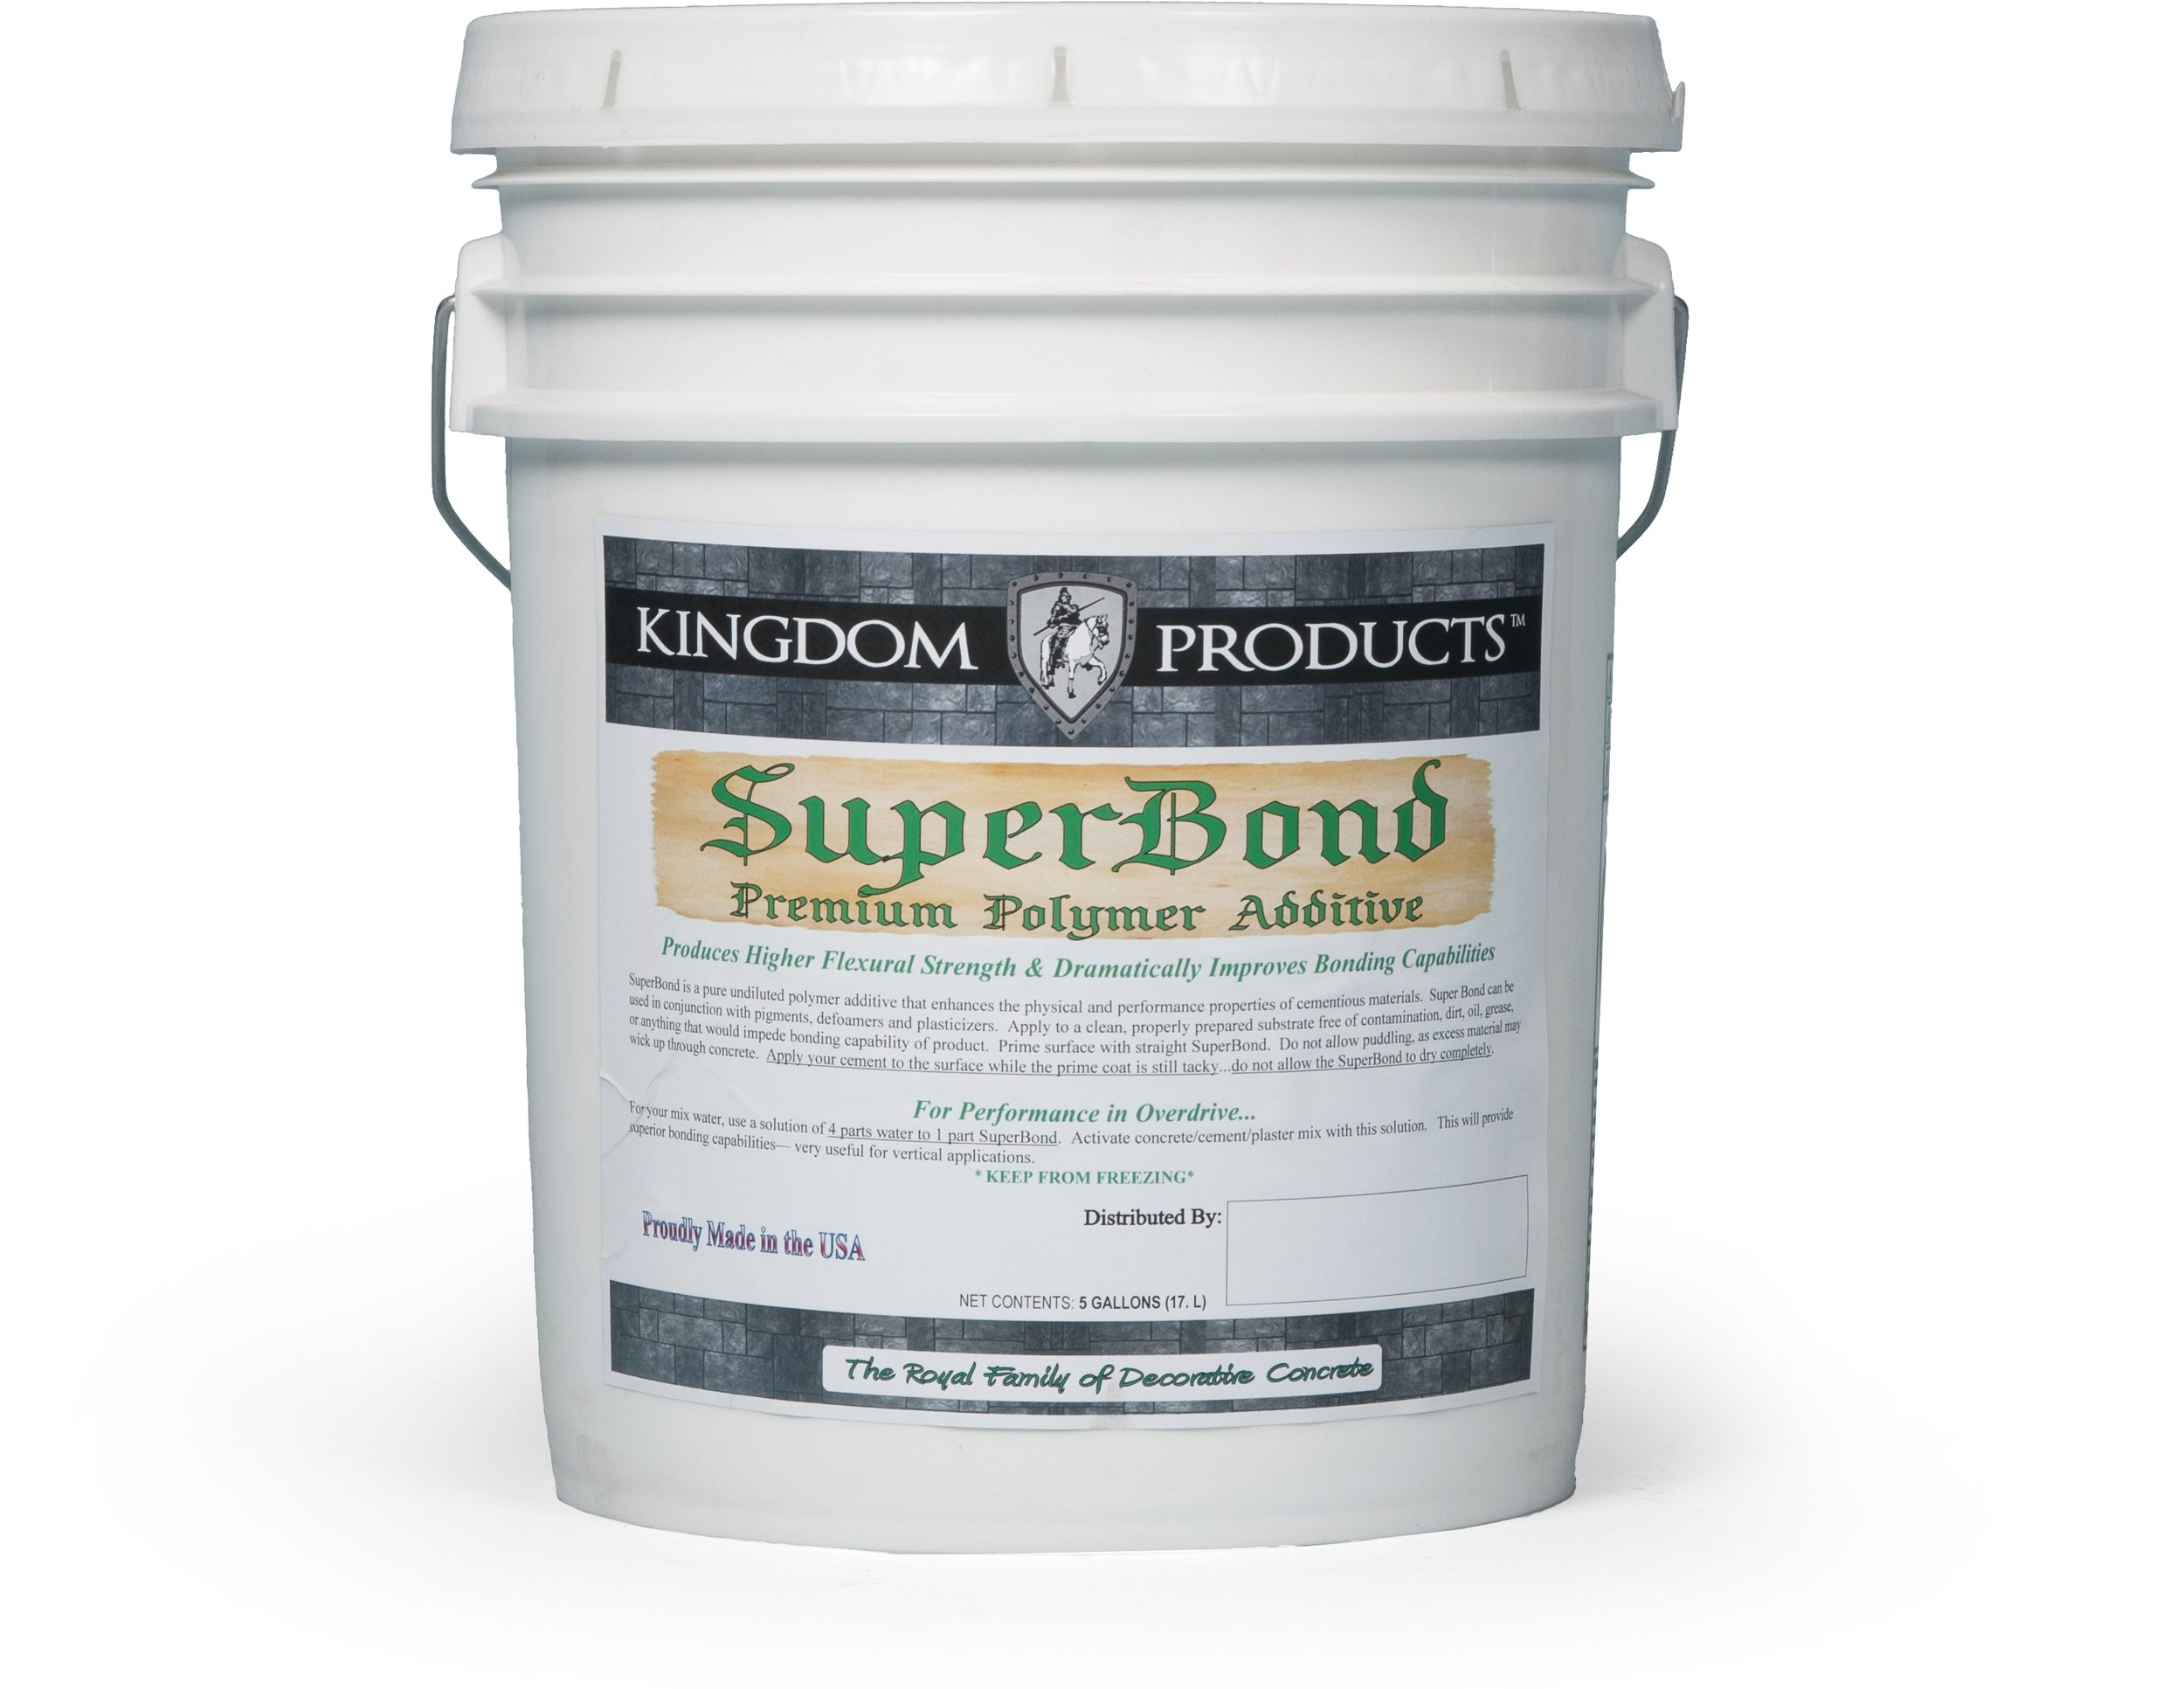 SuperBond   Packaged in 1 Gallon and 5 Gallon Pails.   Technical Data